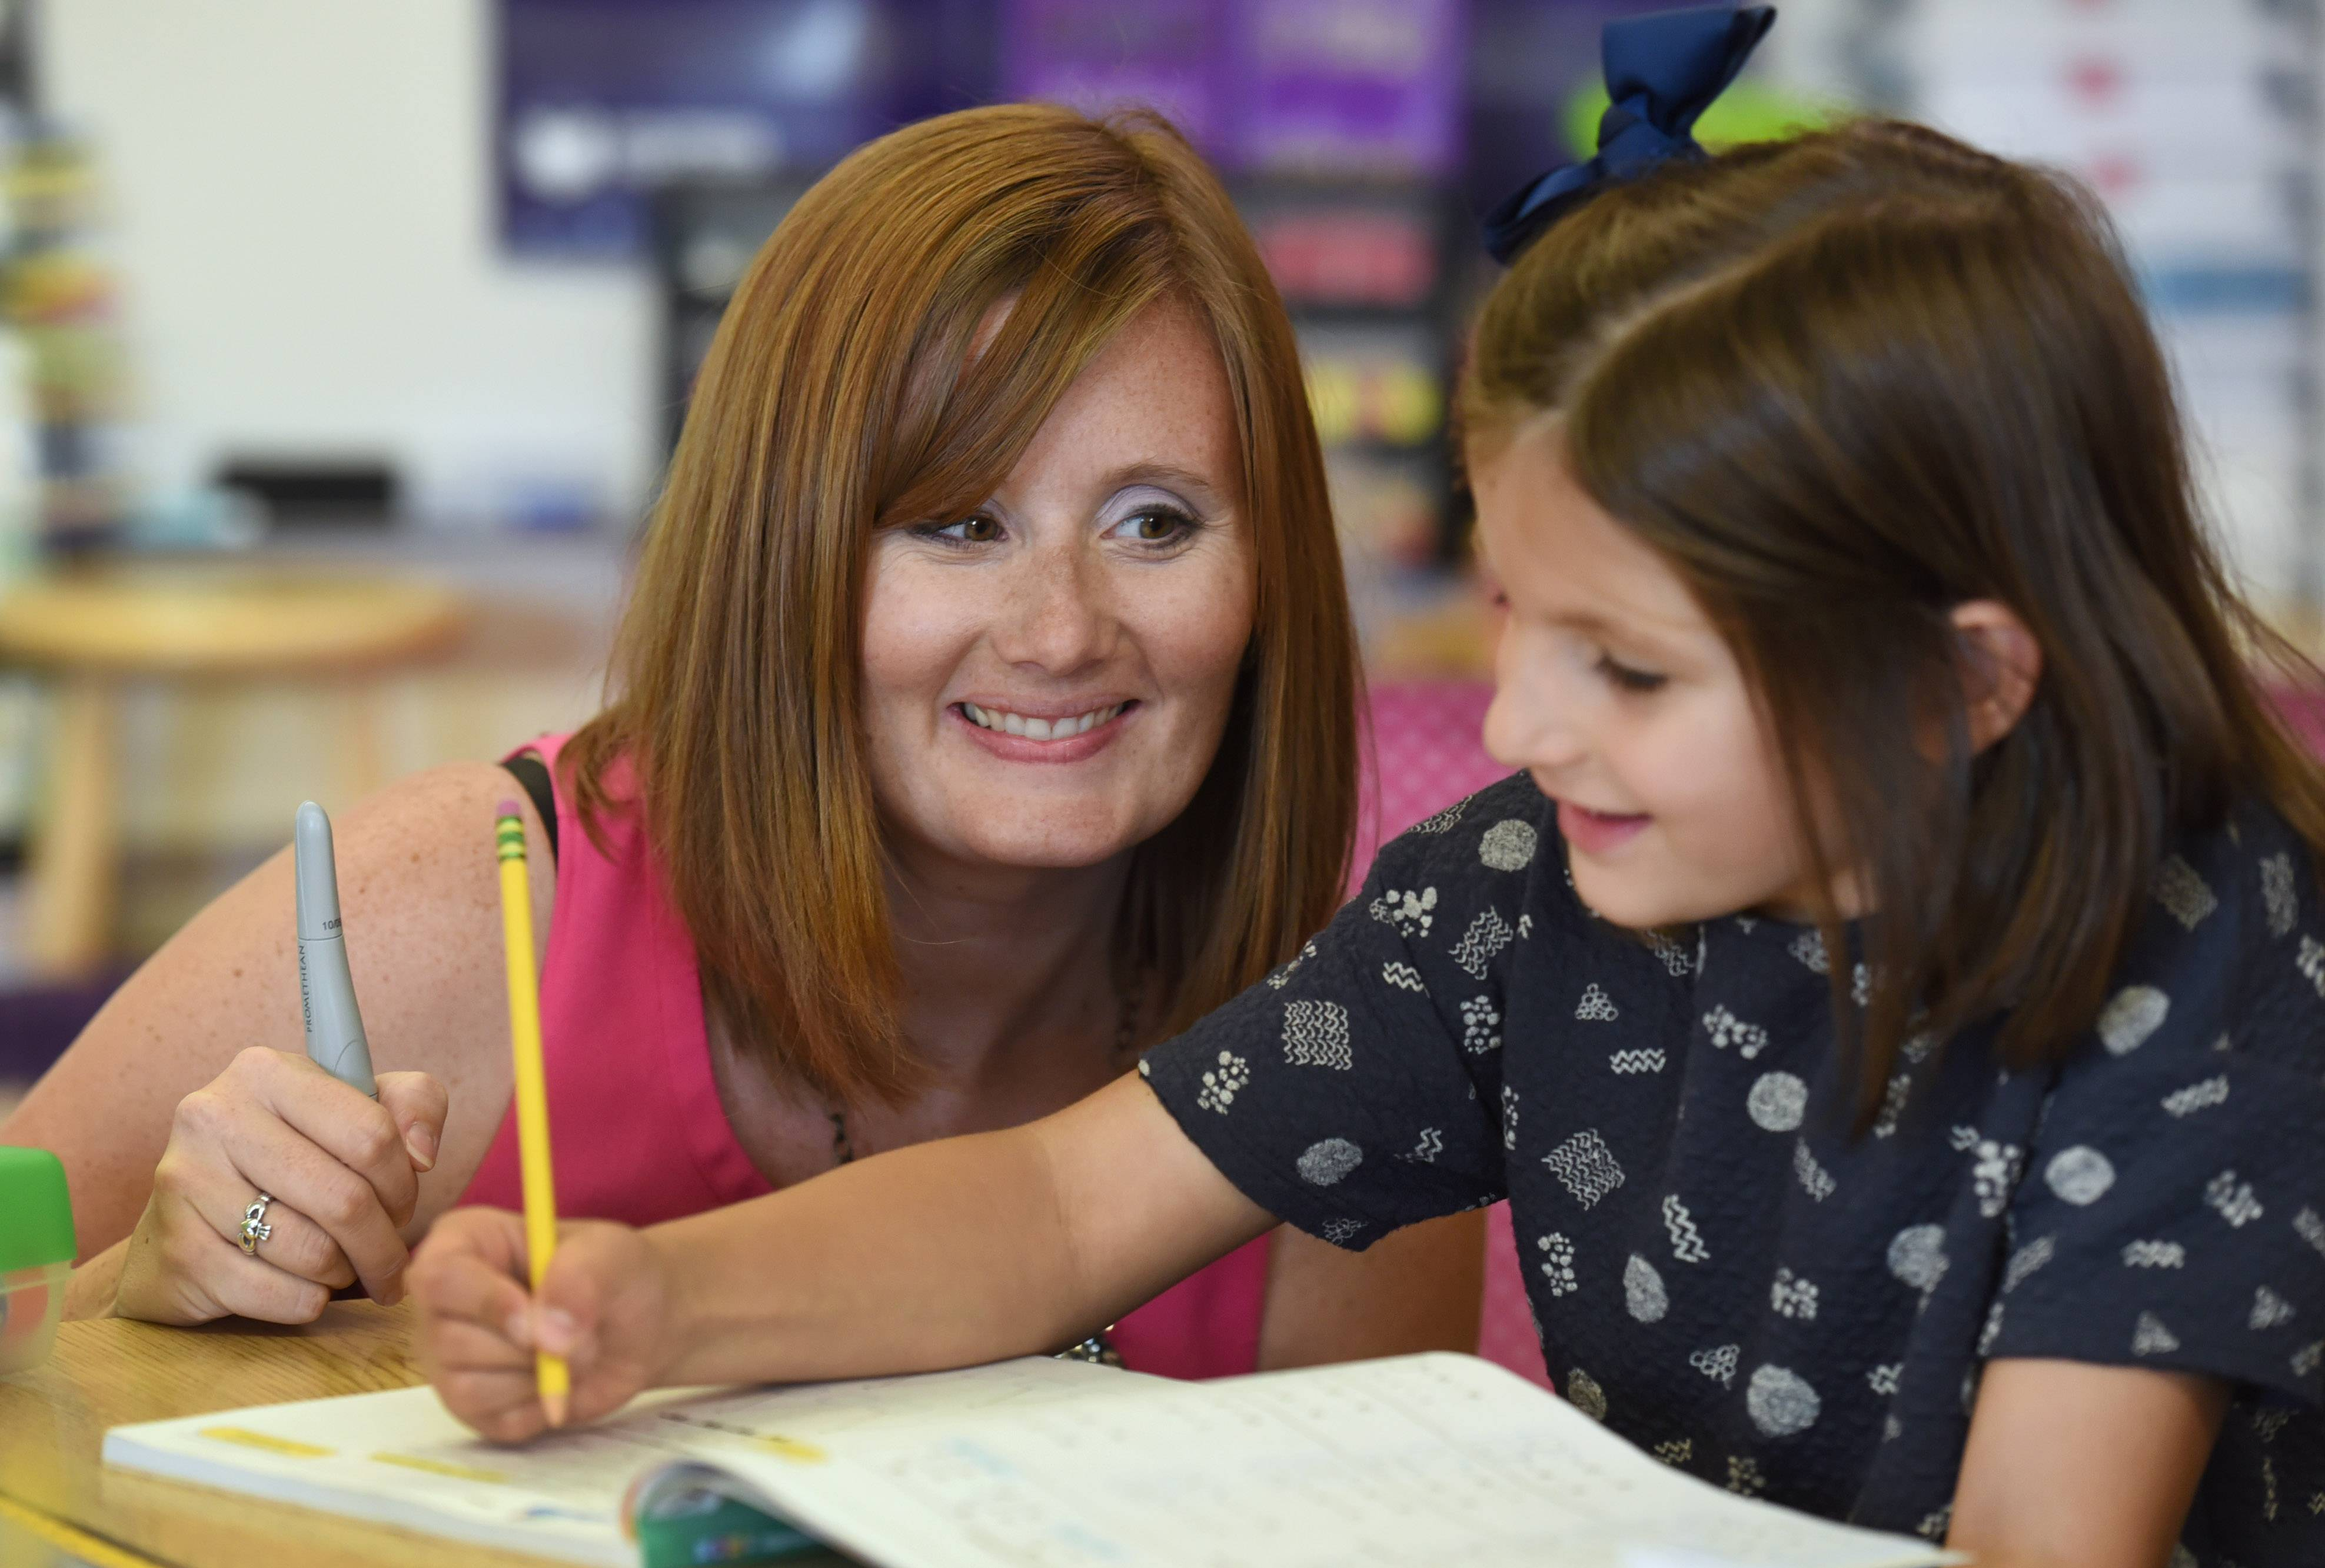 Adler Park Elementary School first-grade teacher Ashley Zeinz works on a math lesson with student Valentina Milanovic-Martin.